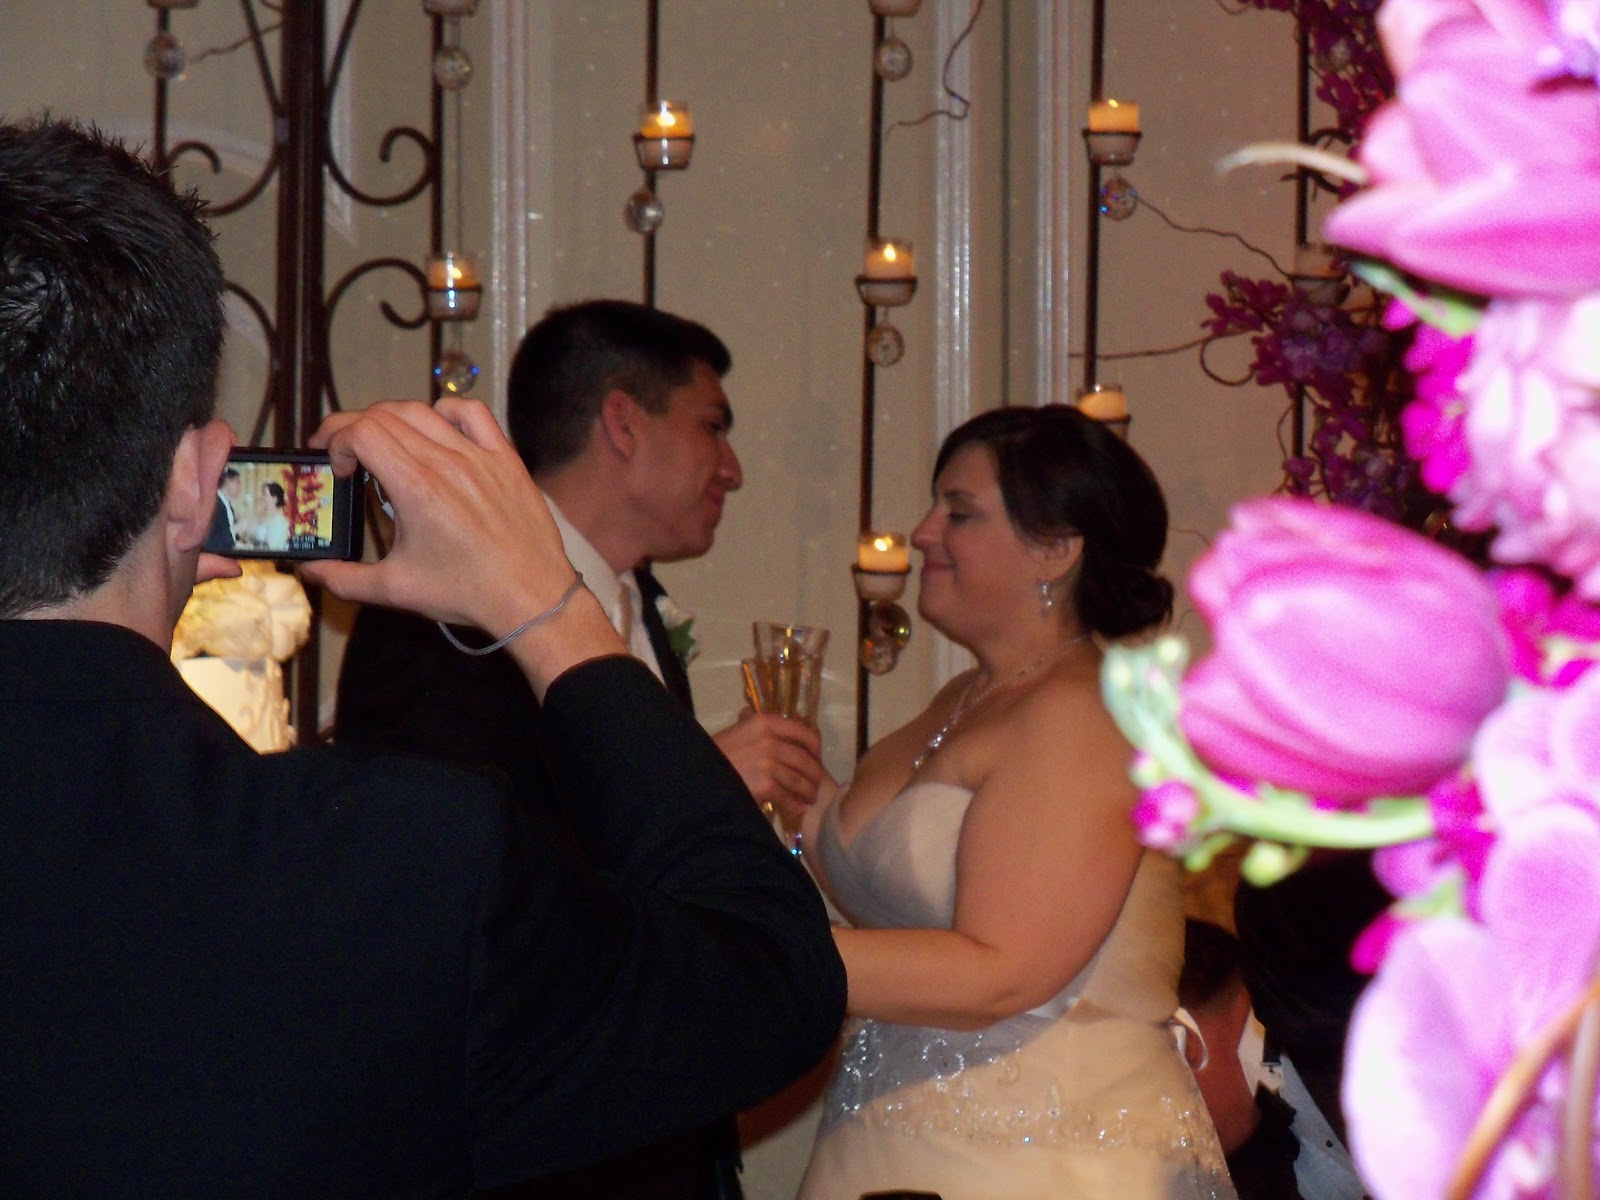 Megan Neal and Mark Suarez wedding - 100_8397.JPG